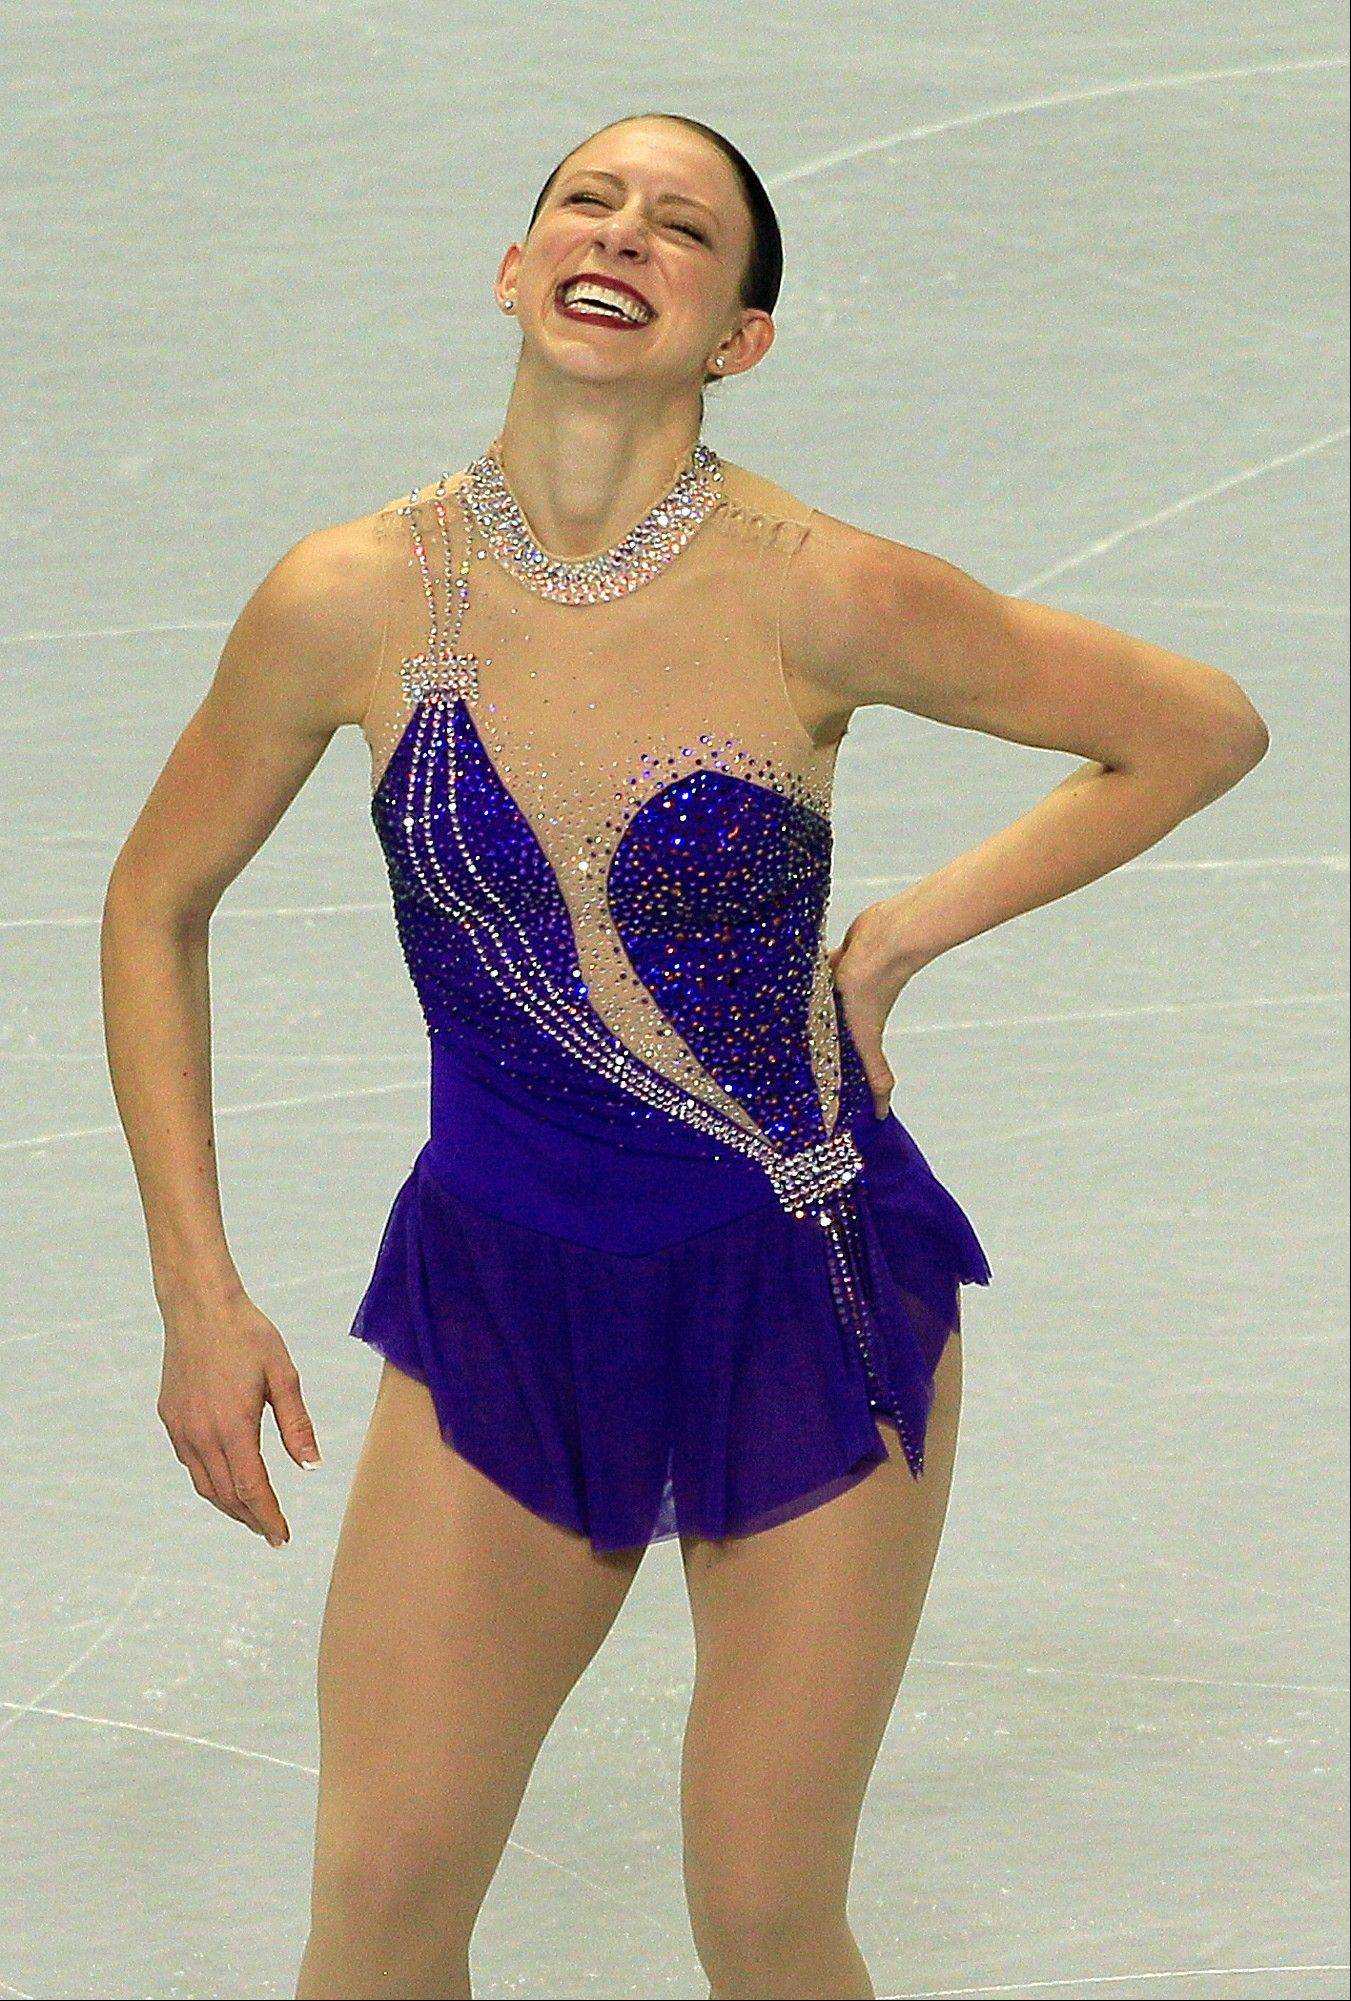 She trains mostly in Colorado, but Des Plaines native Agnes Zawadzki also works trains once a month with David Santee of Park Ridge. She stands in first place heading into Saturday's free skate at the U.S. Figure Skating Championships.